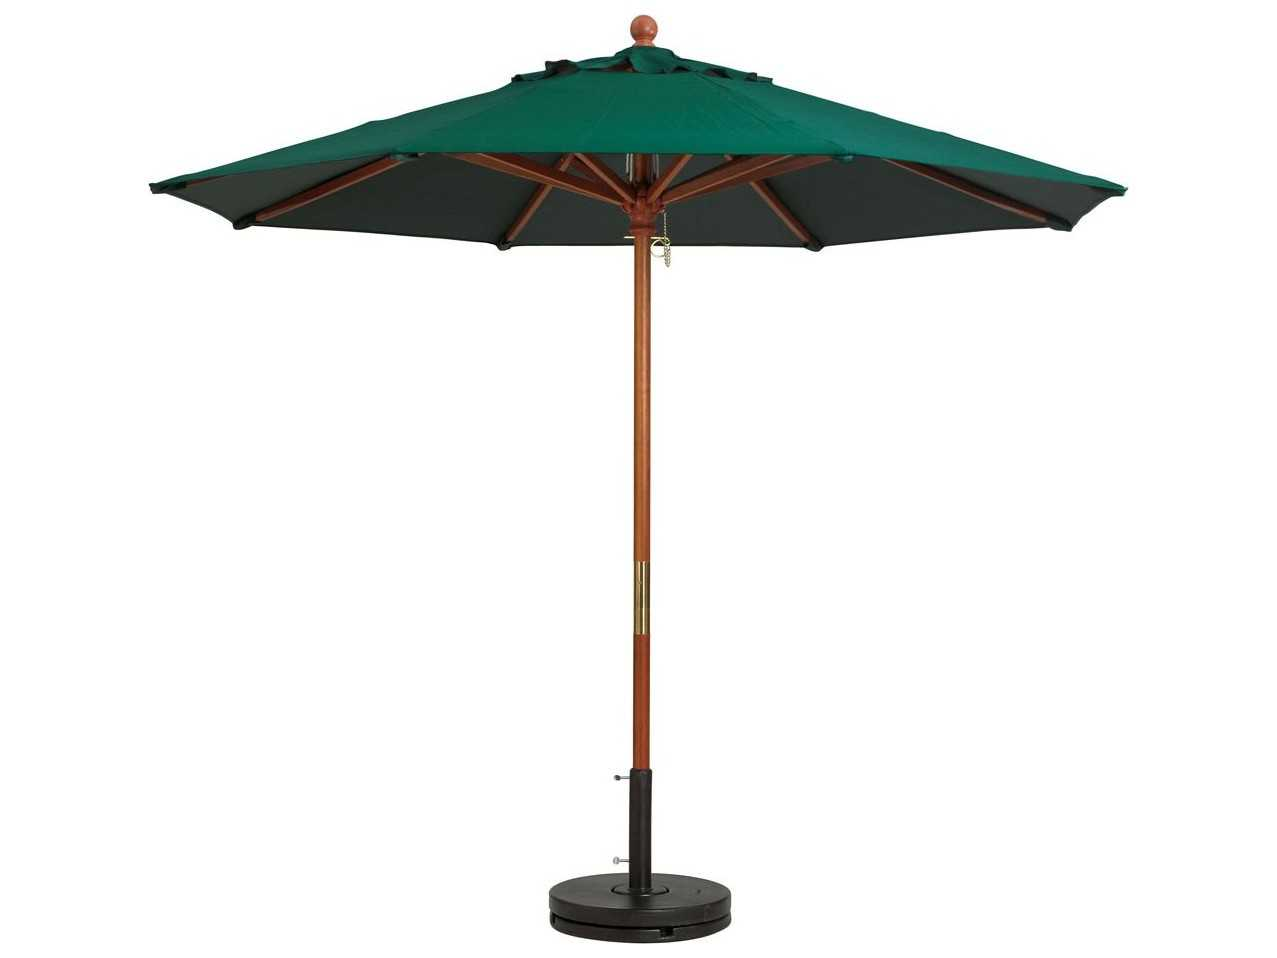 Grosfillex Classic Wood 7 Ft Round Wooden Market Umbrella 98942031